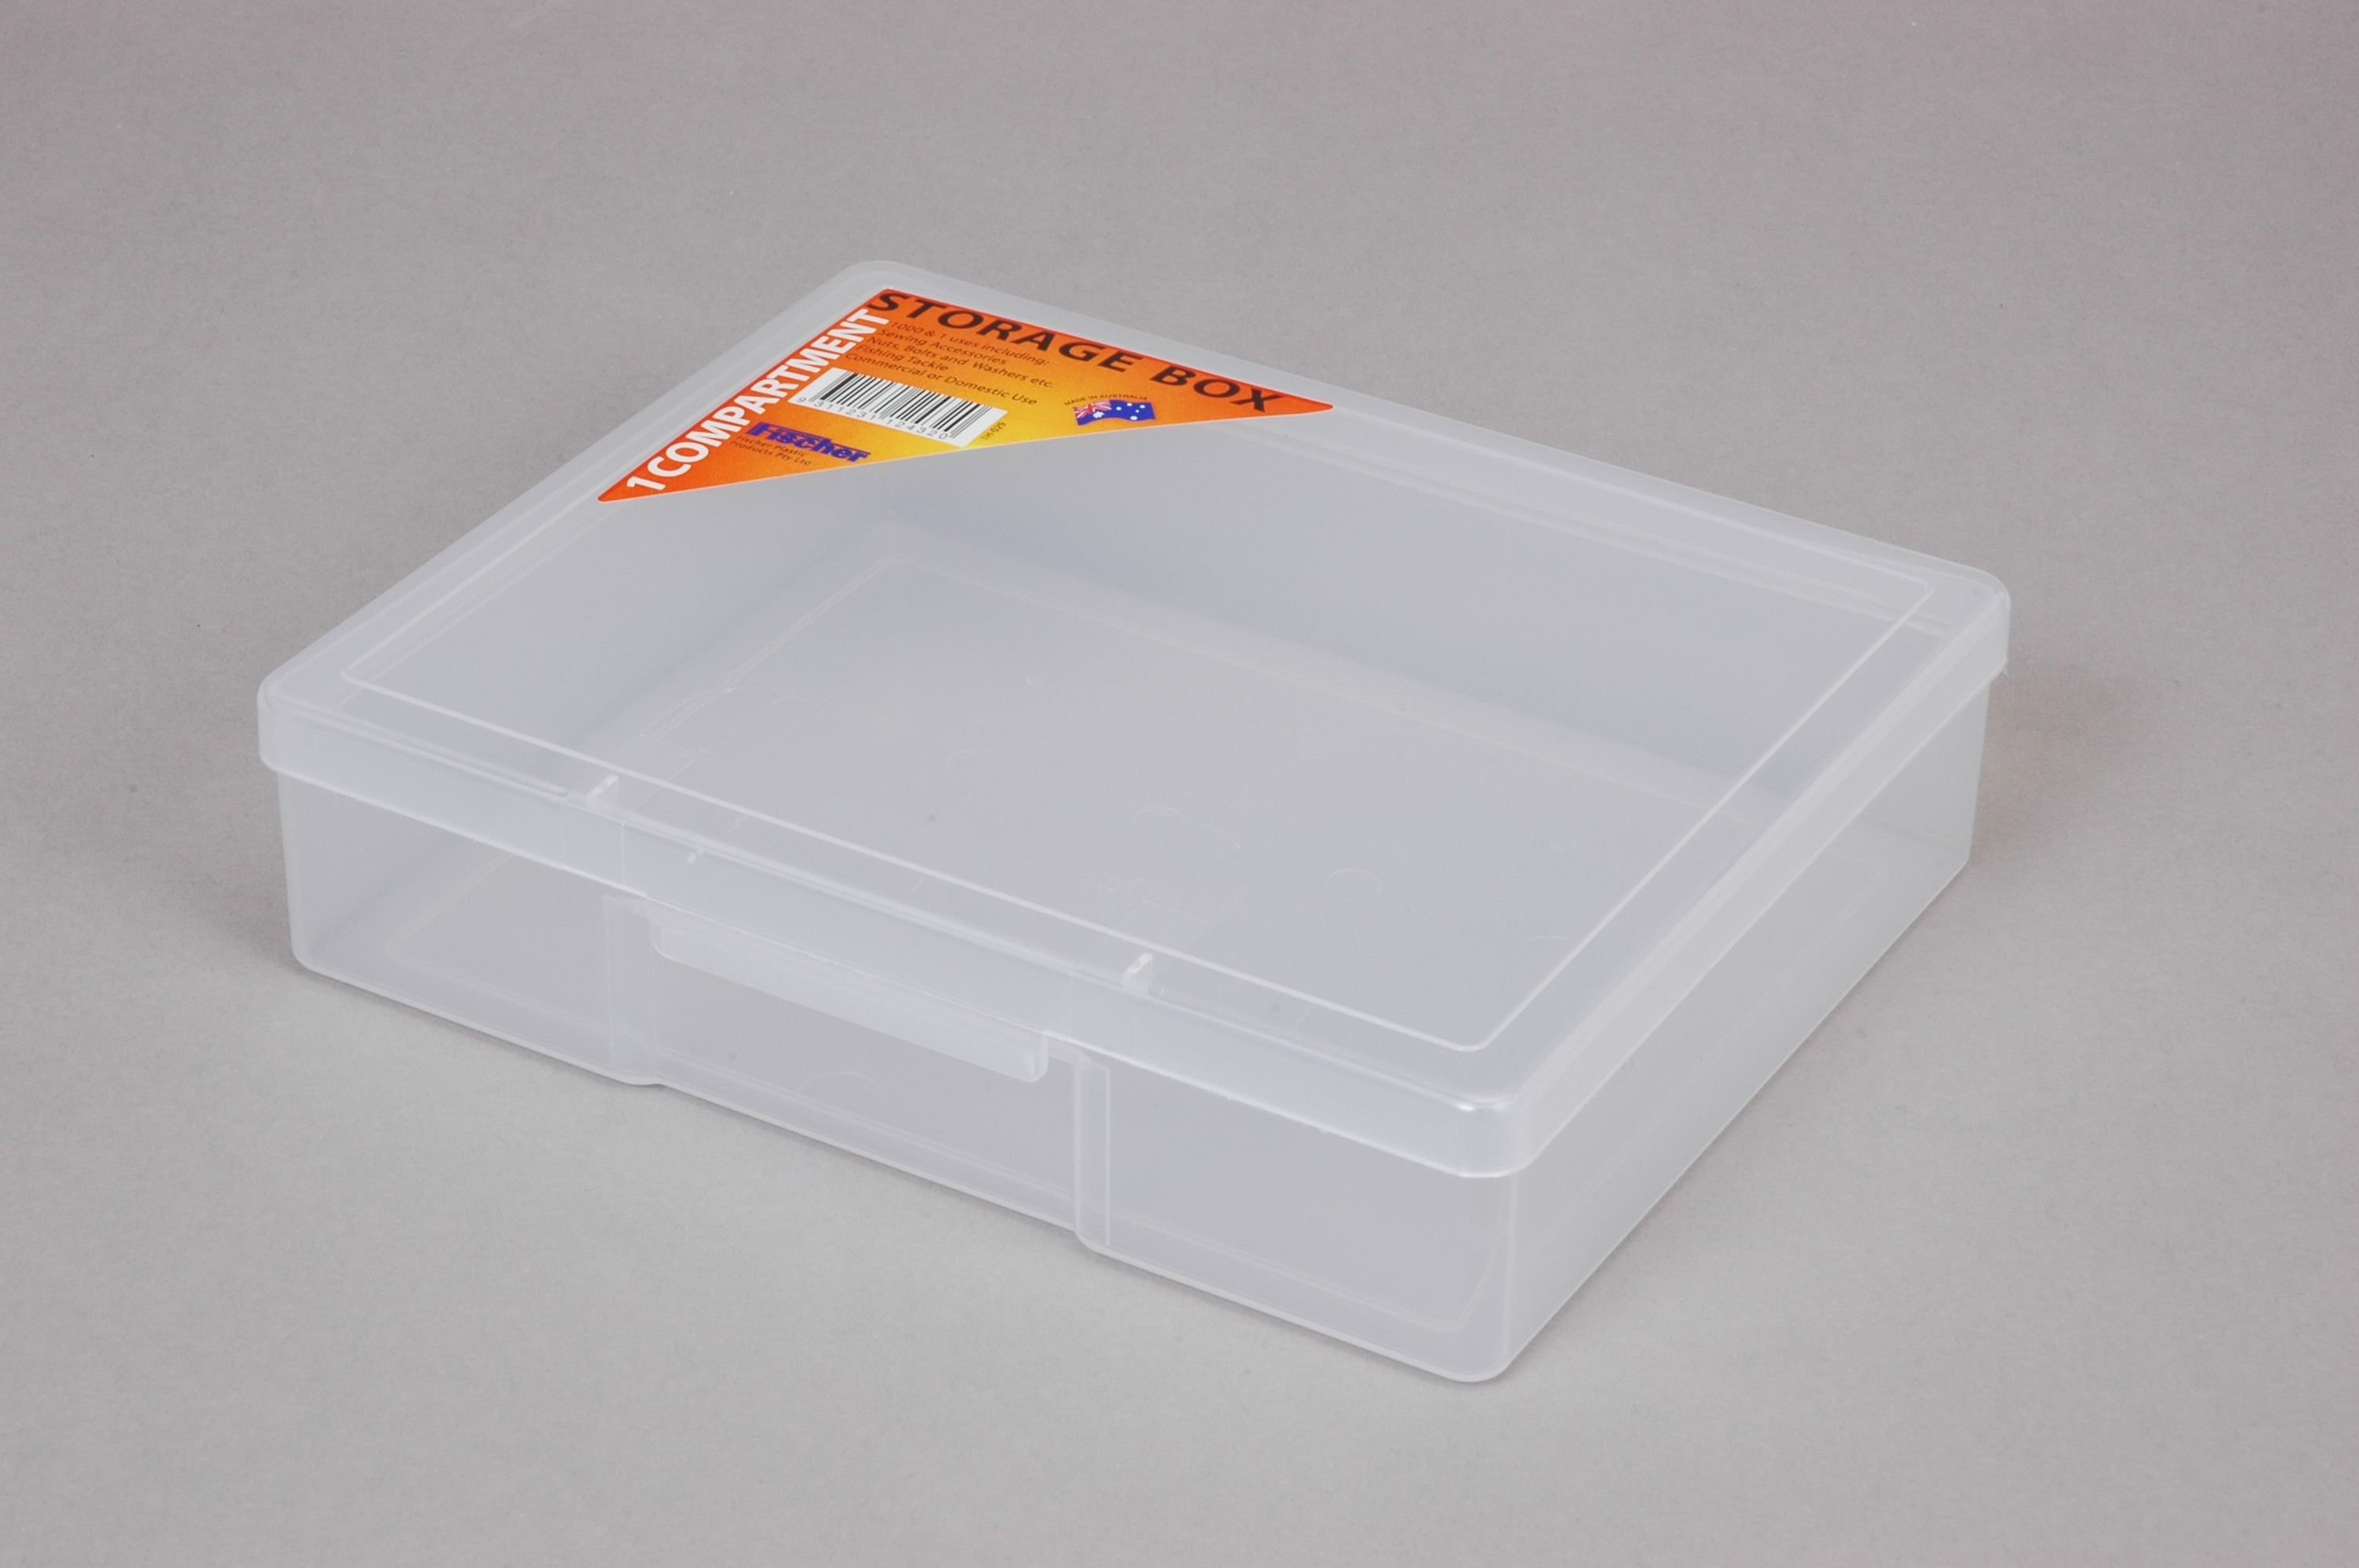 1 Compartment - Medium Storage Box